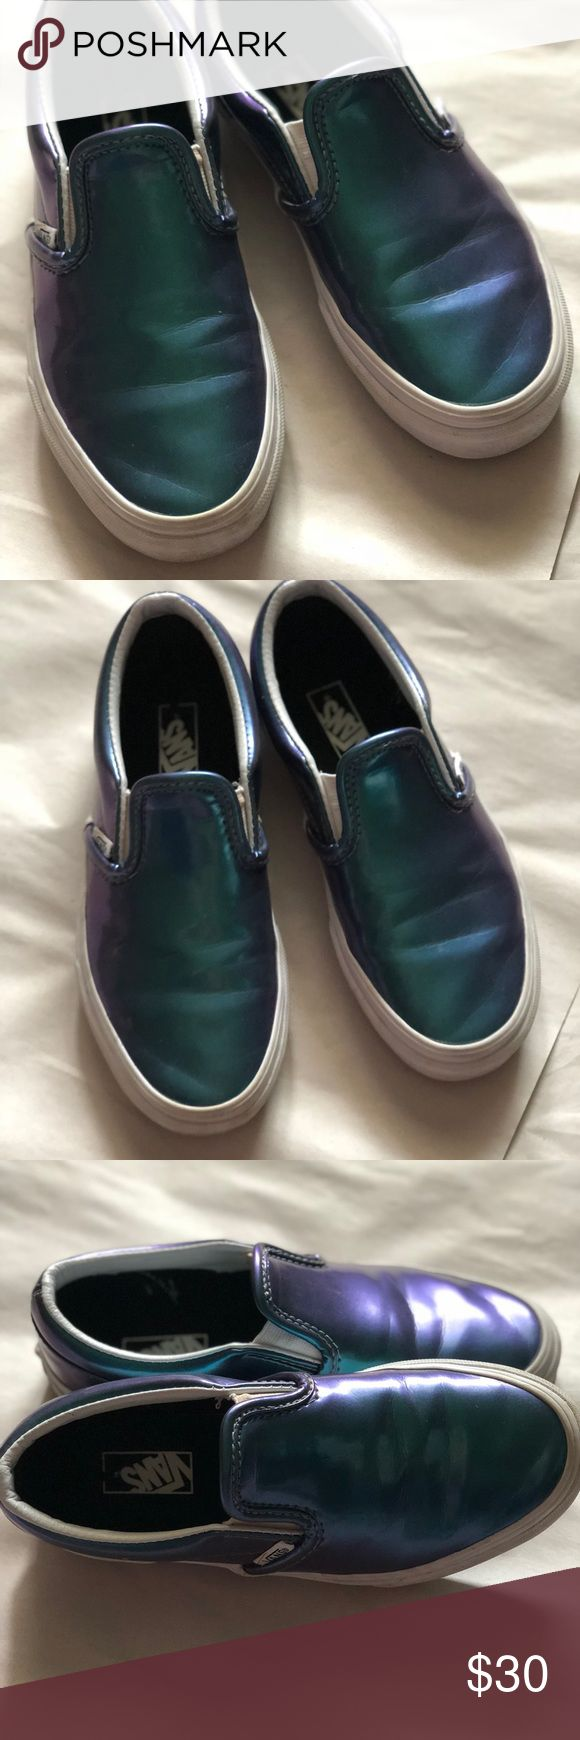 Vans! Youth 2.5! Leather Vans! Translucent blue, purple and green! Youth size 2.5! Only worn a few times before my son out grew them! Gently used condition! These are great for boy or girl! Vans Shoes Sneakers